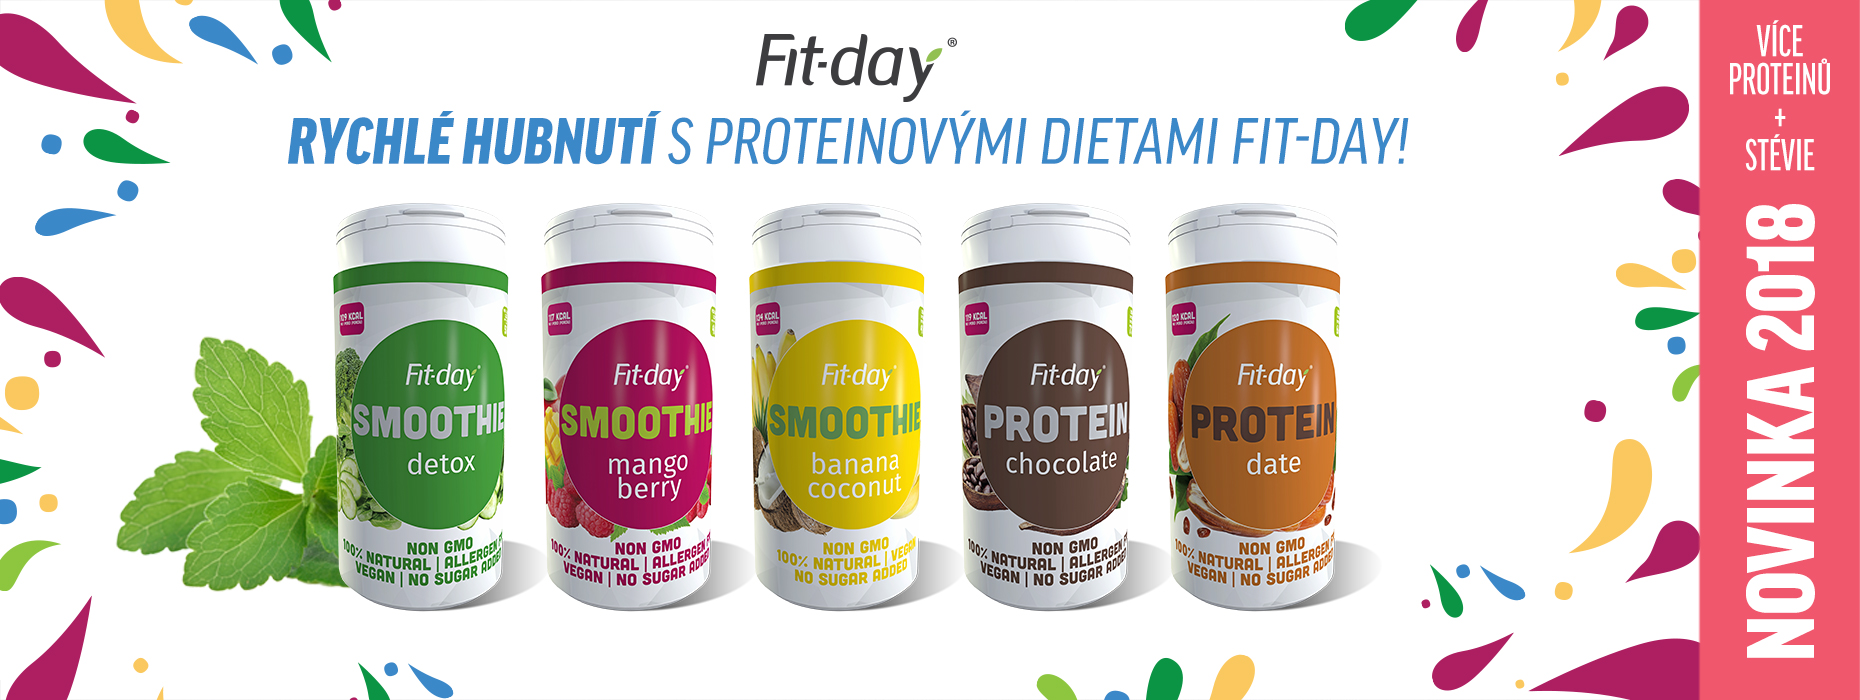 FitDay_banner_1860x700_dieta